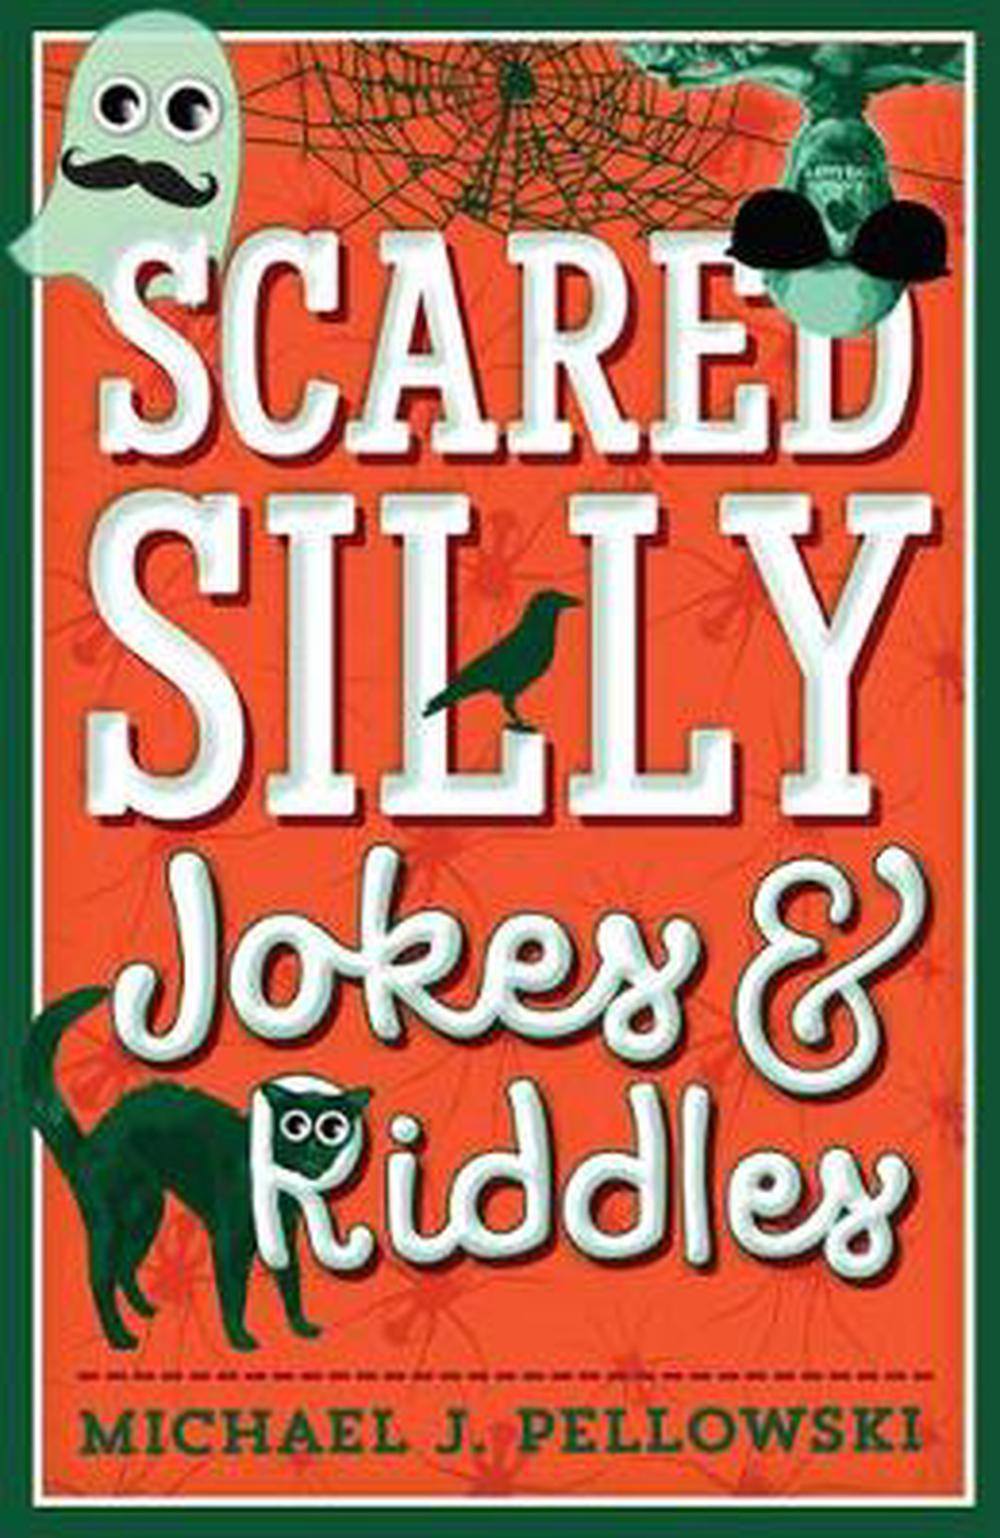 Scared Silly Jokes & Riddles